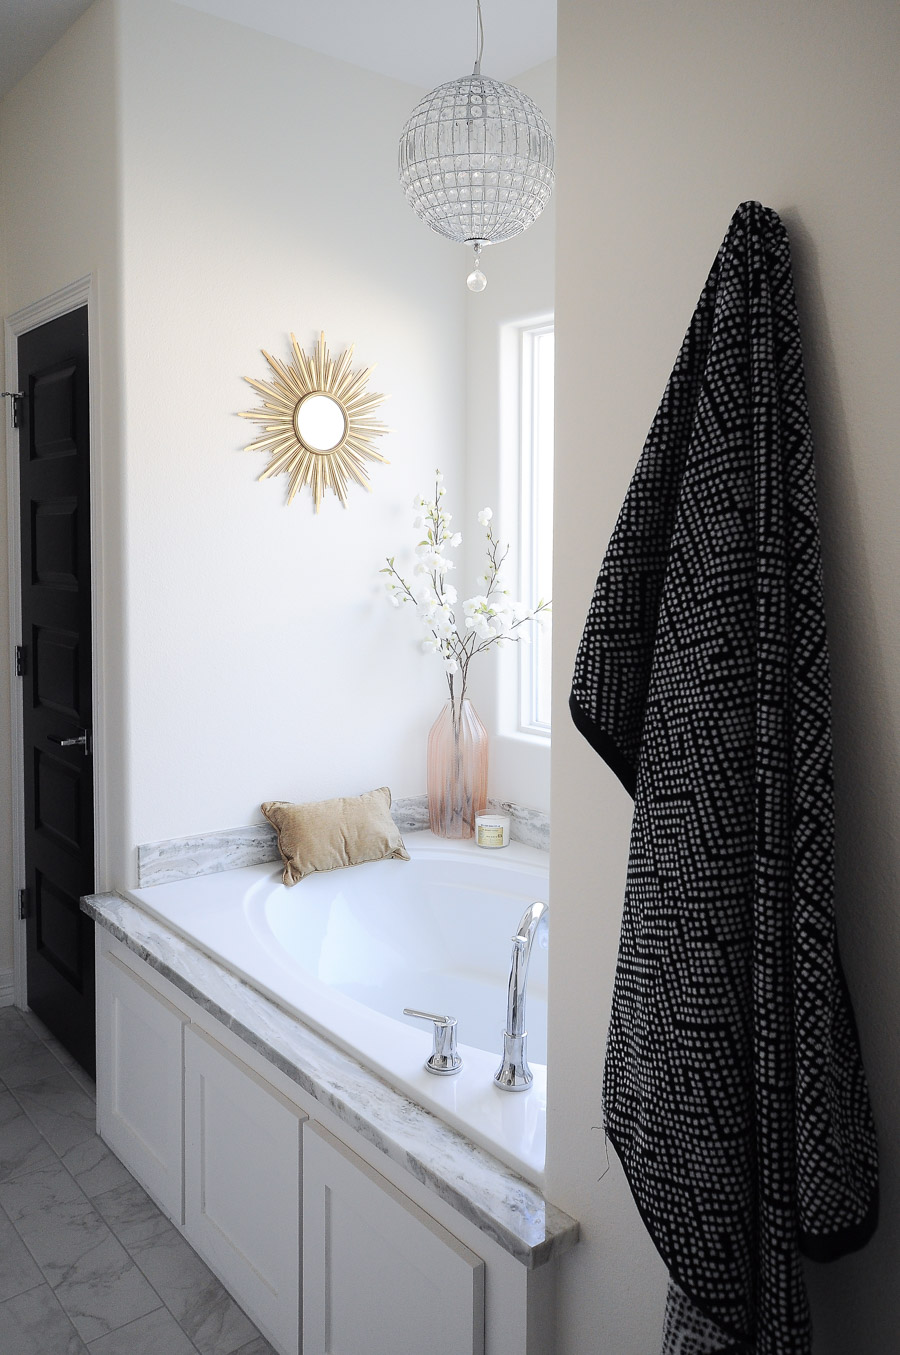 Jetted bathtub looks like a relaxing retreat when paired with gold and blush pink accents in a master bathroom suite.